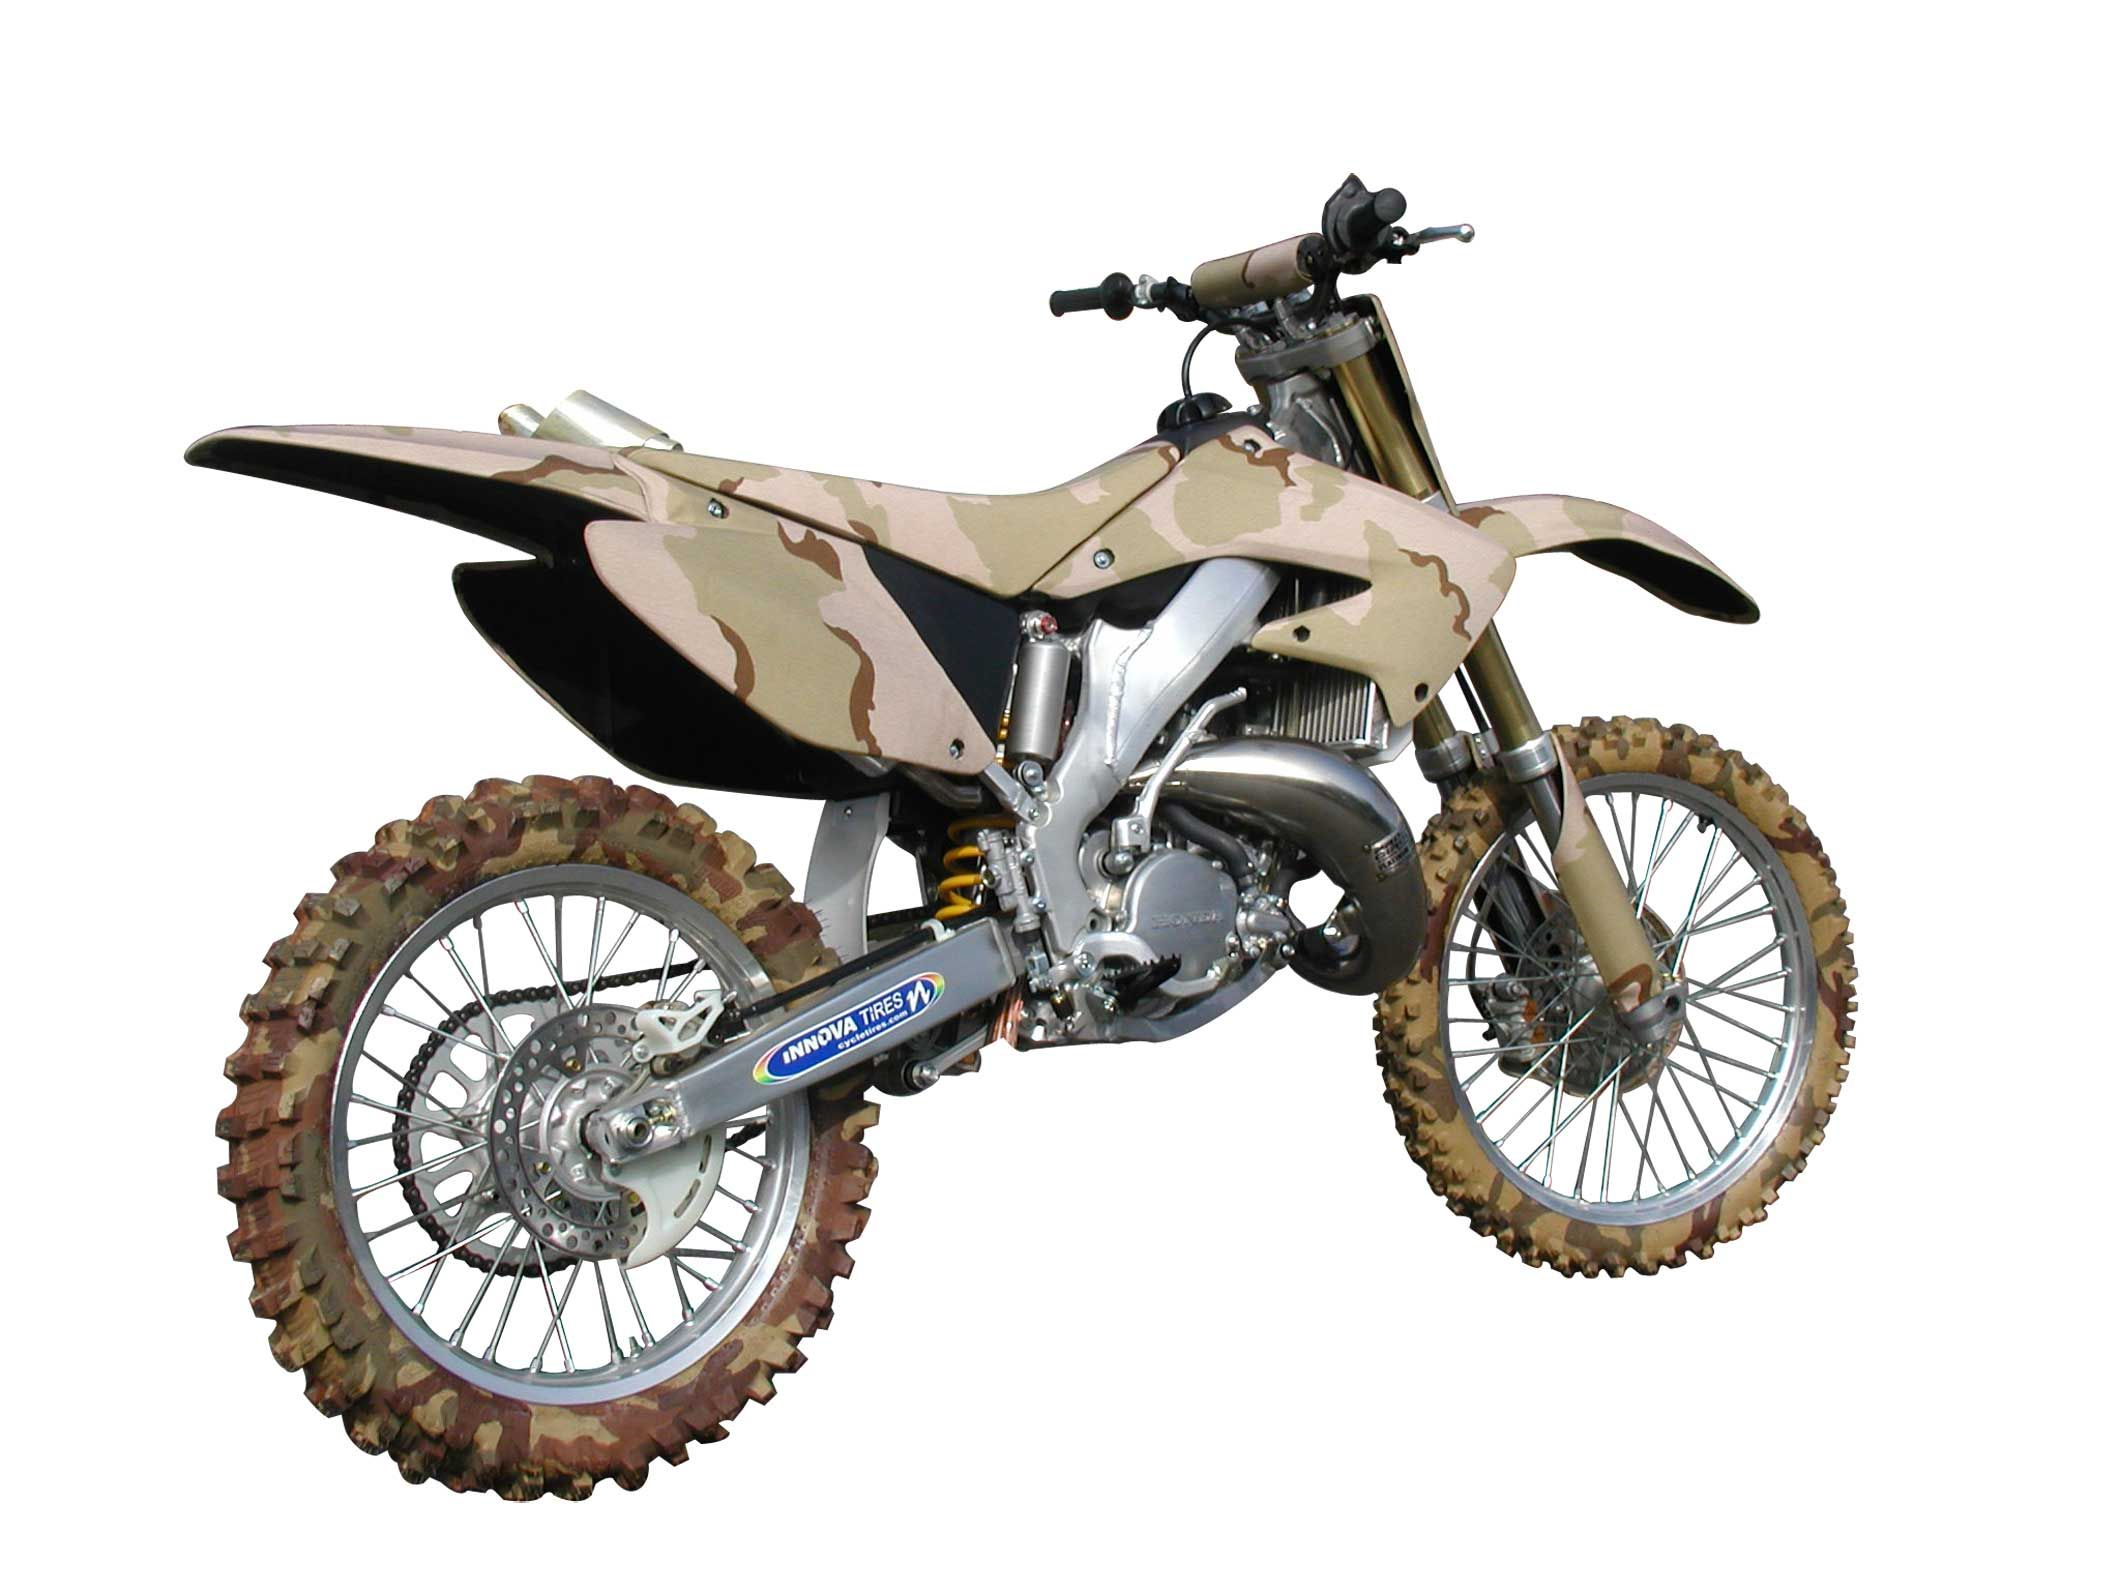 Desrt Camo Bike Jpg 2120 1590 Bug Out Board Pinterest Camo